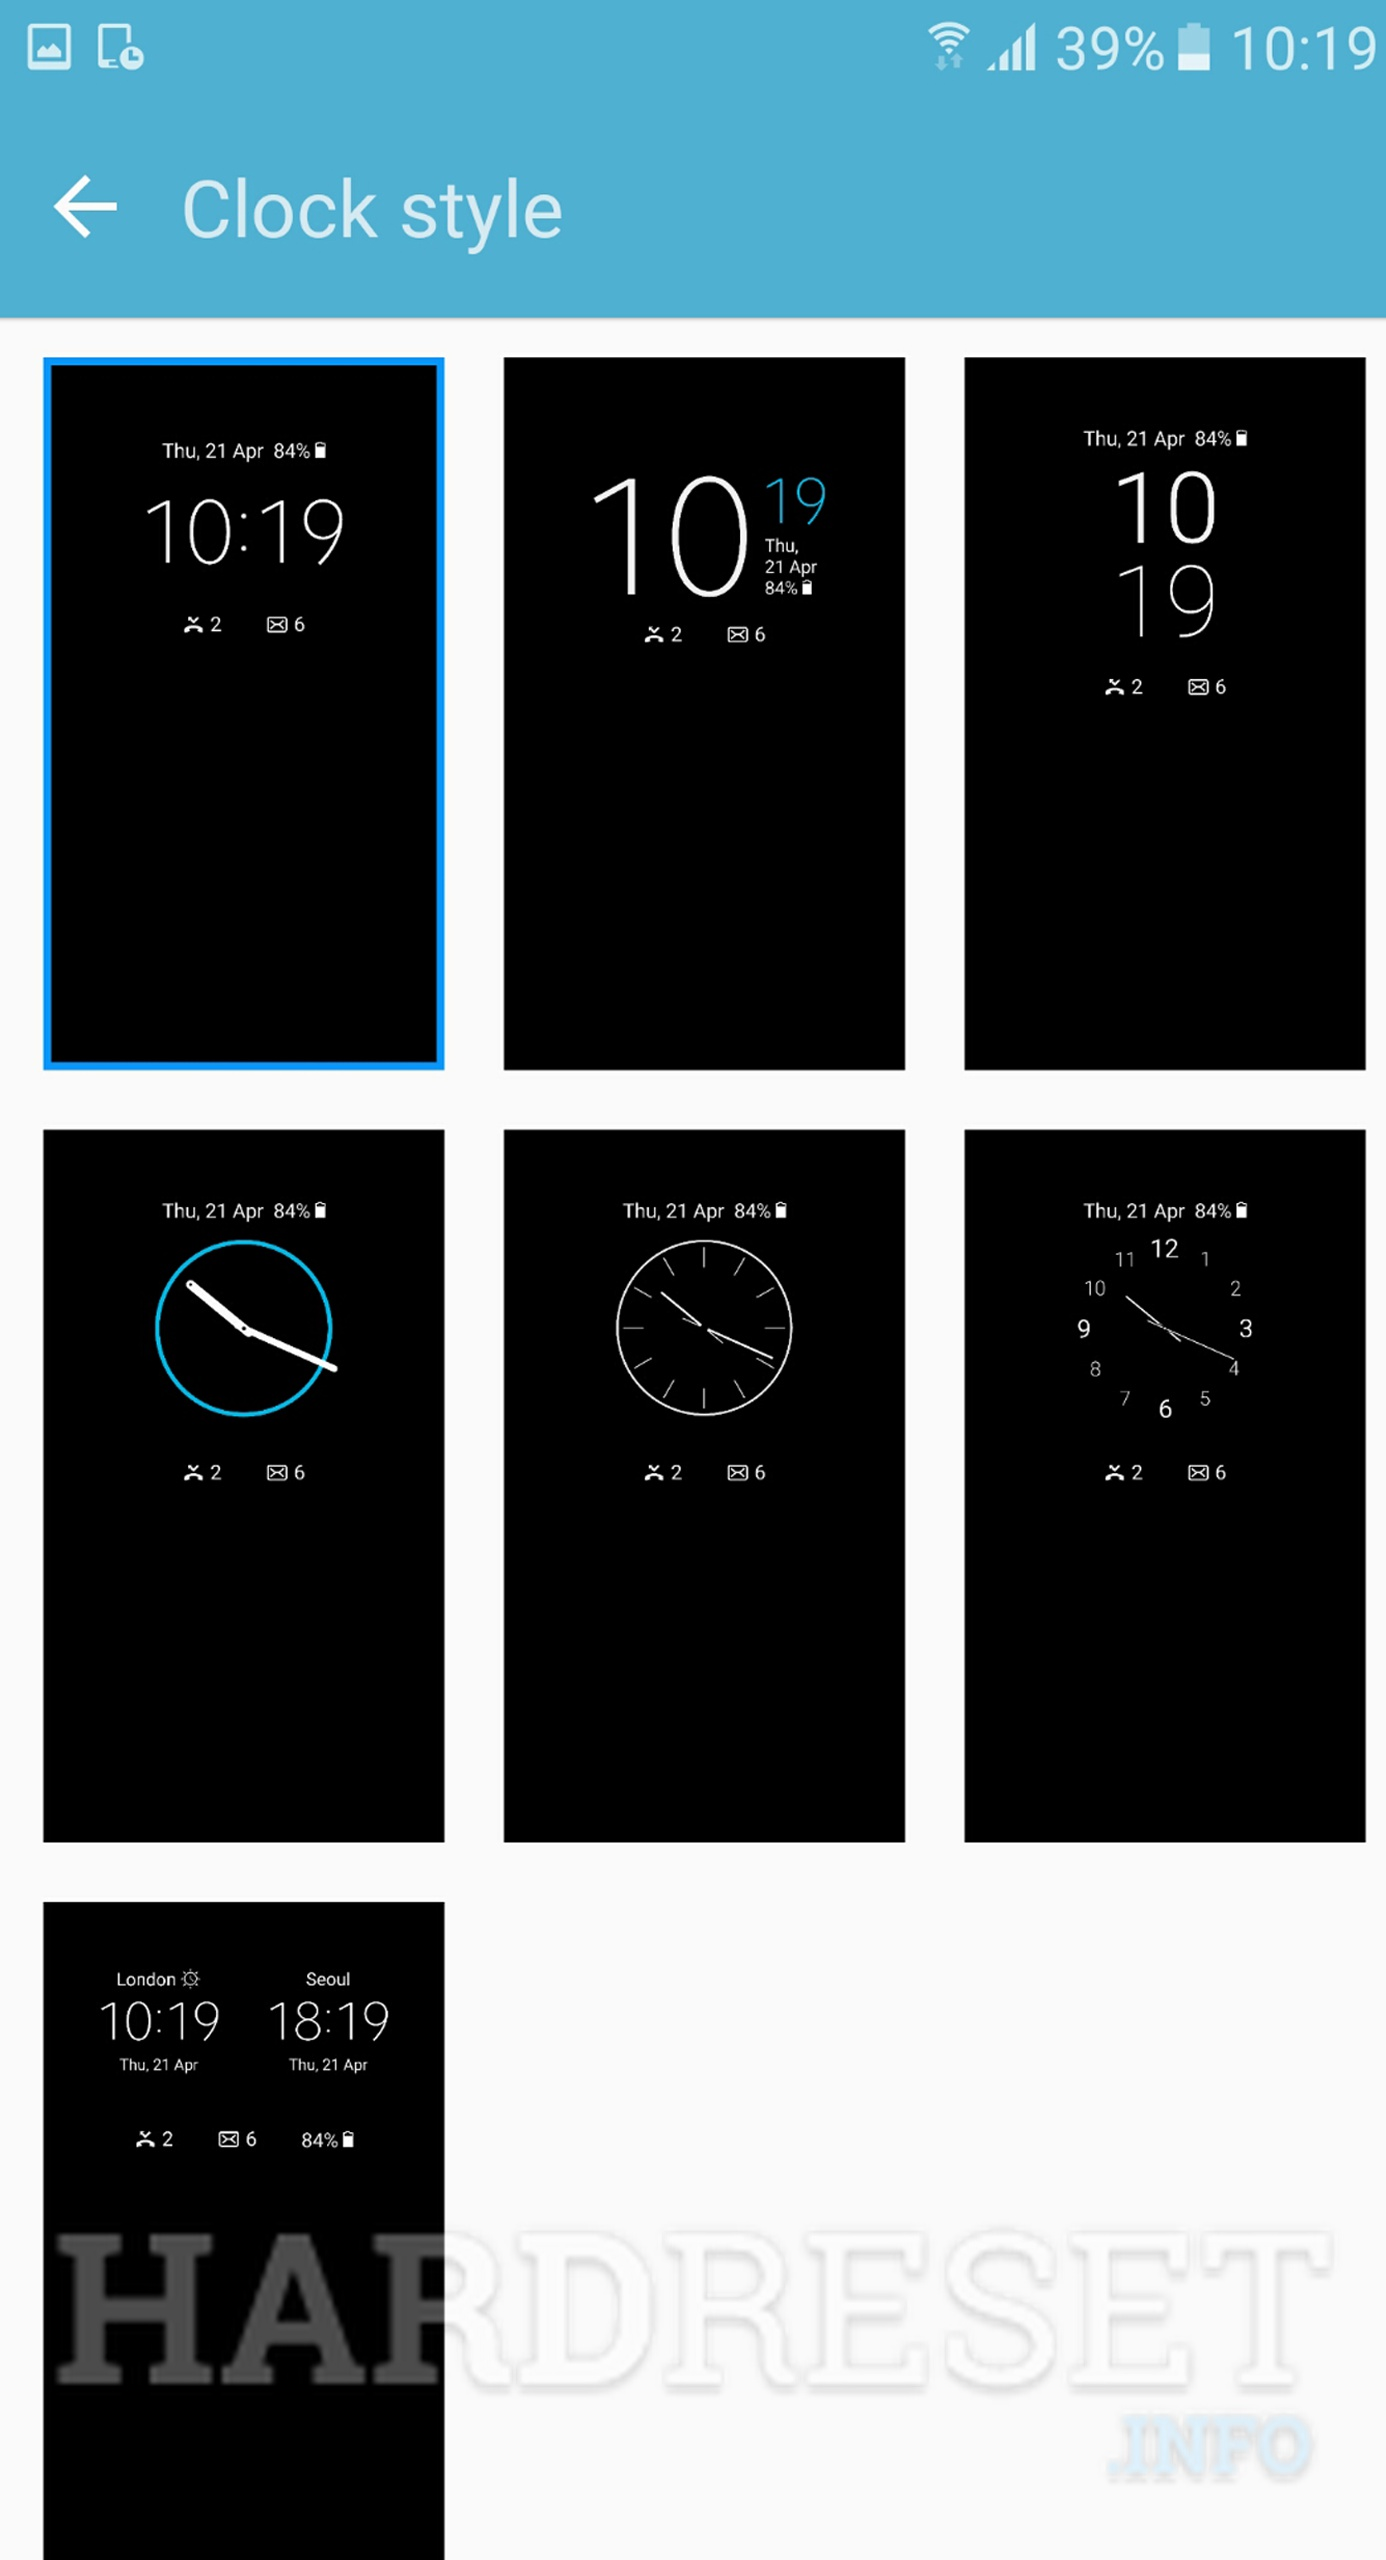 Change Wallpaper Samsung Galaxy M10 How To Hardreset Info